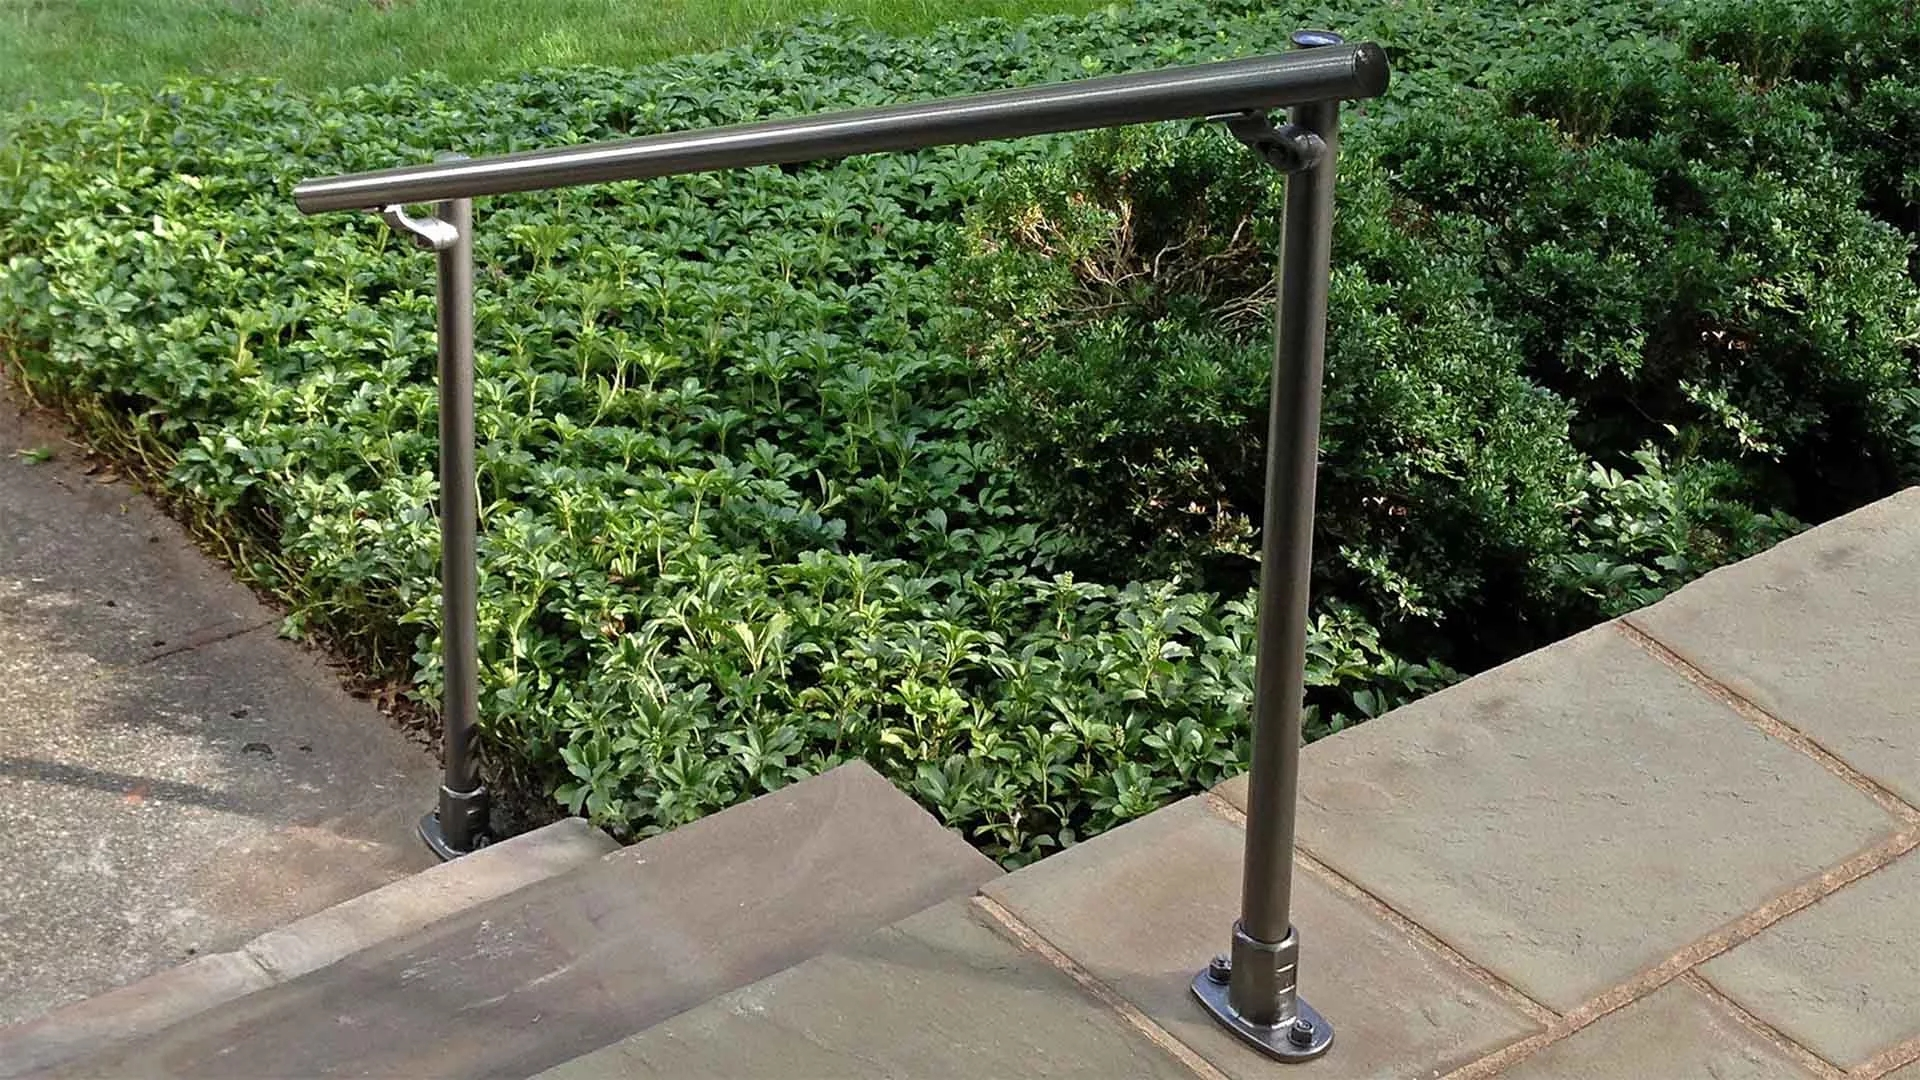 Outdoor Stair Railing Kit Buy Step Handrail Online Simplified   Outside Metal Railings For Steps   Galvanized Iron   Wrought Iron Staircase Used   Decorative Iron Stair Rail Support   Steel Railing   Mixed